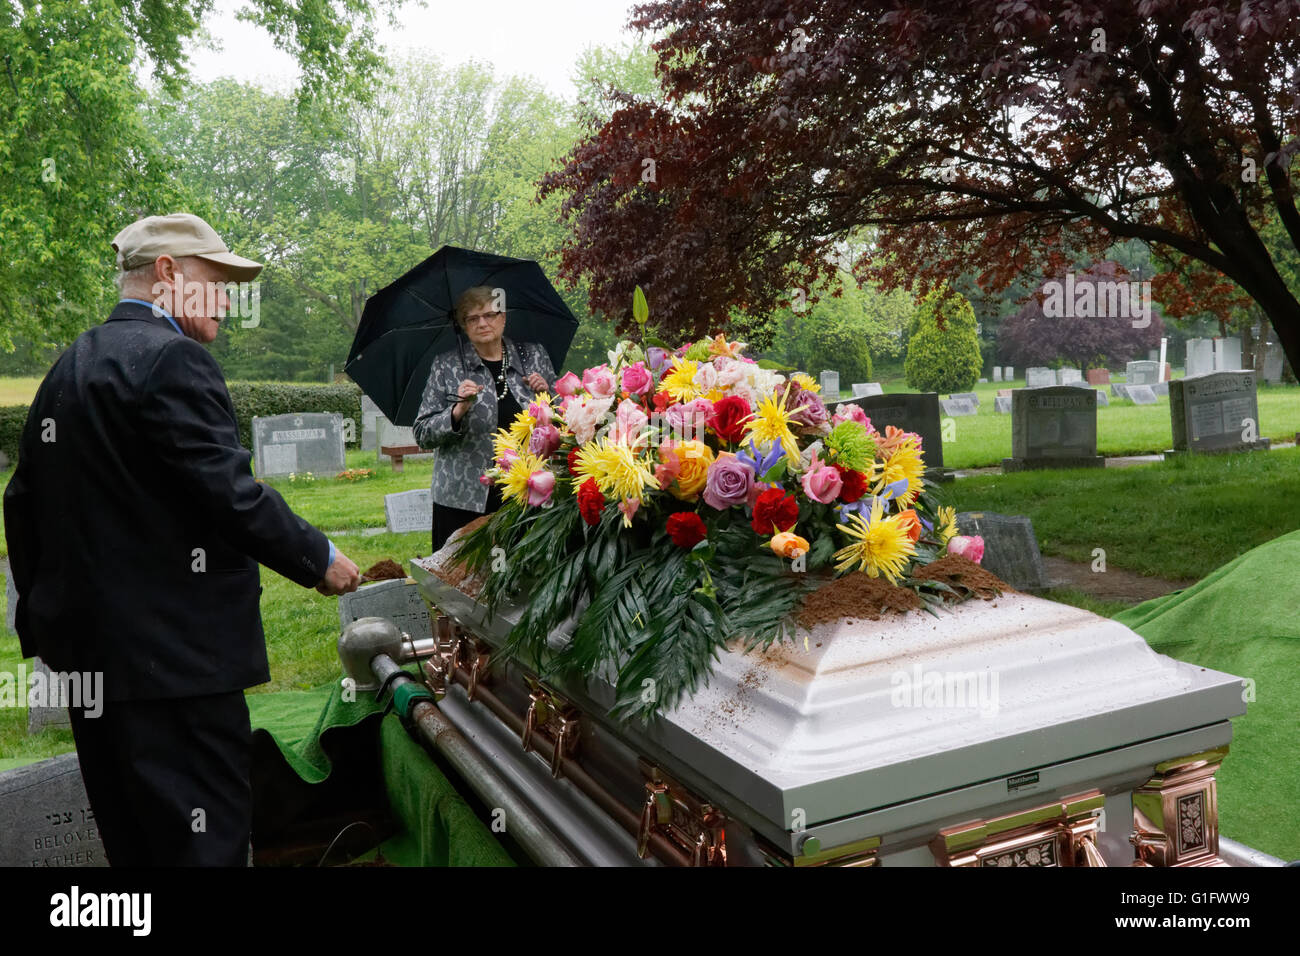 Funeral Coffin Flowers Stock Photos Funeral Coffin Flowers Stock